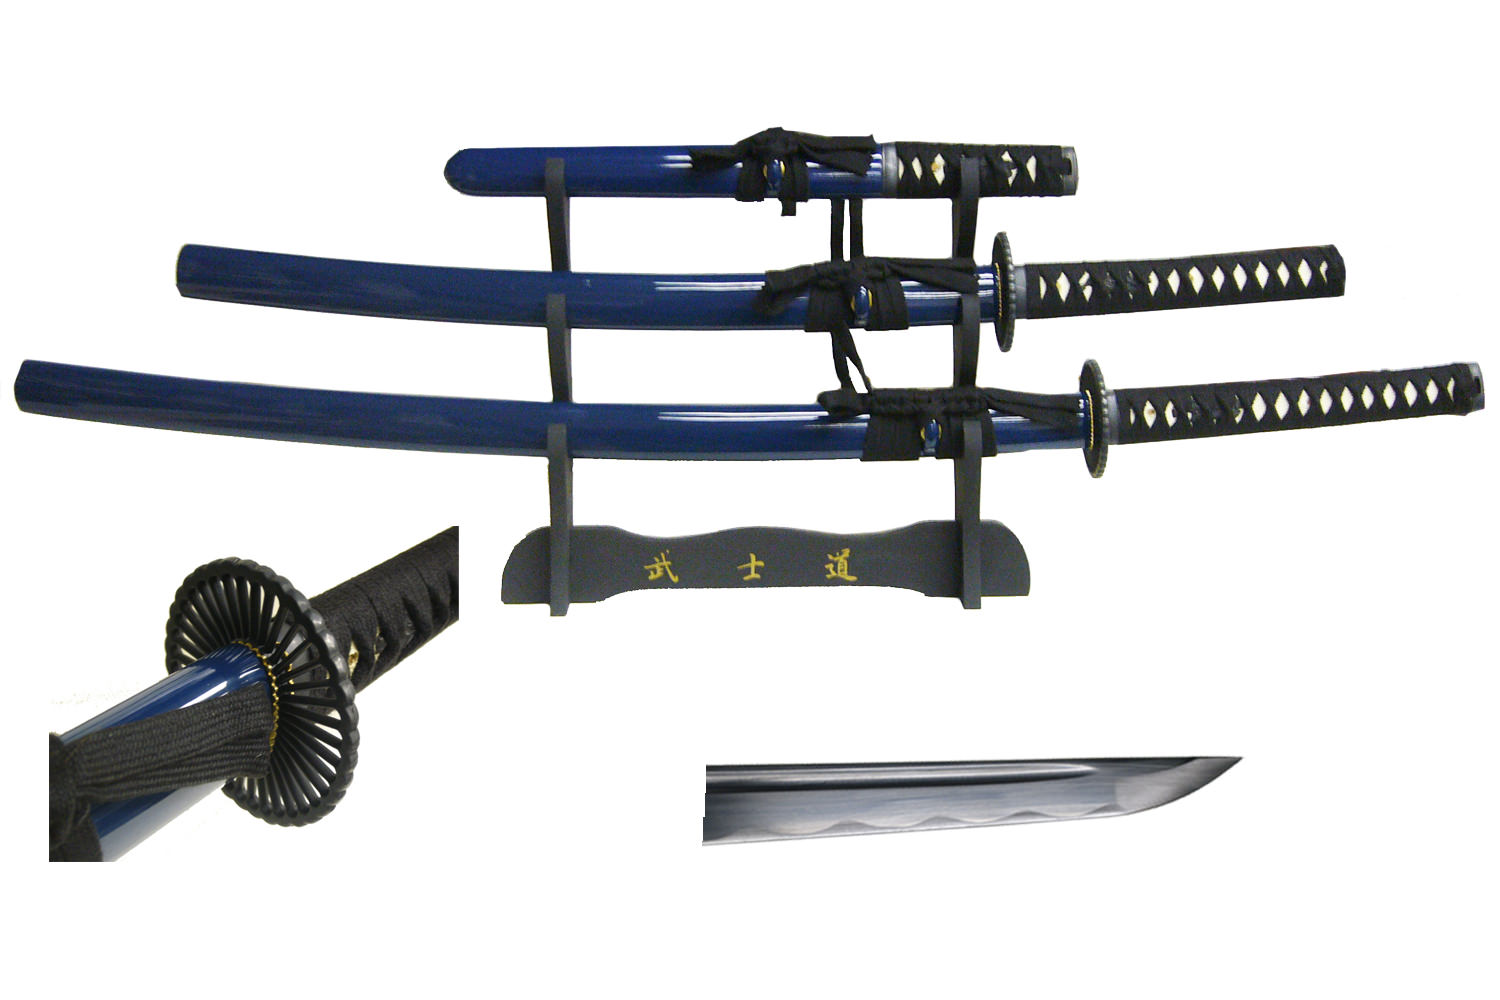 Musha Hand Hond Razor Sharp Samurai Sword Set with Stand 41""